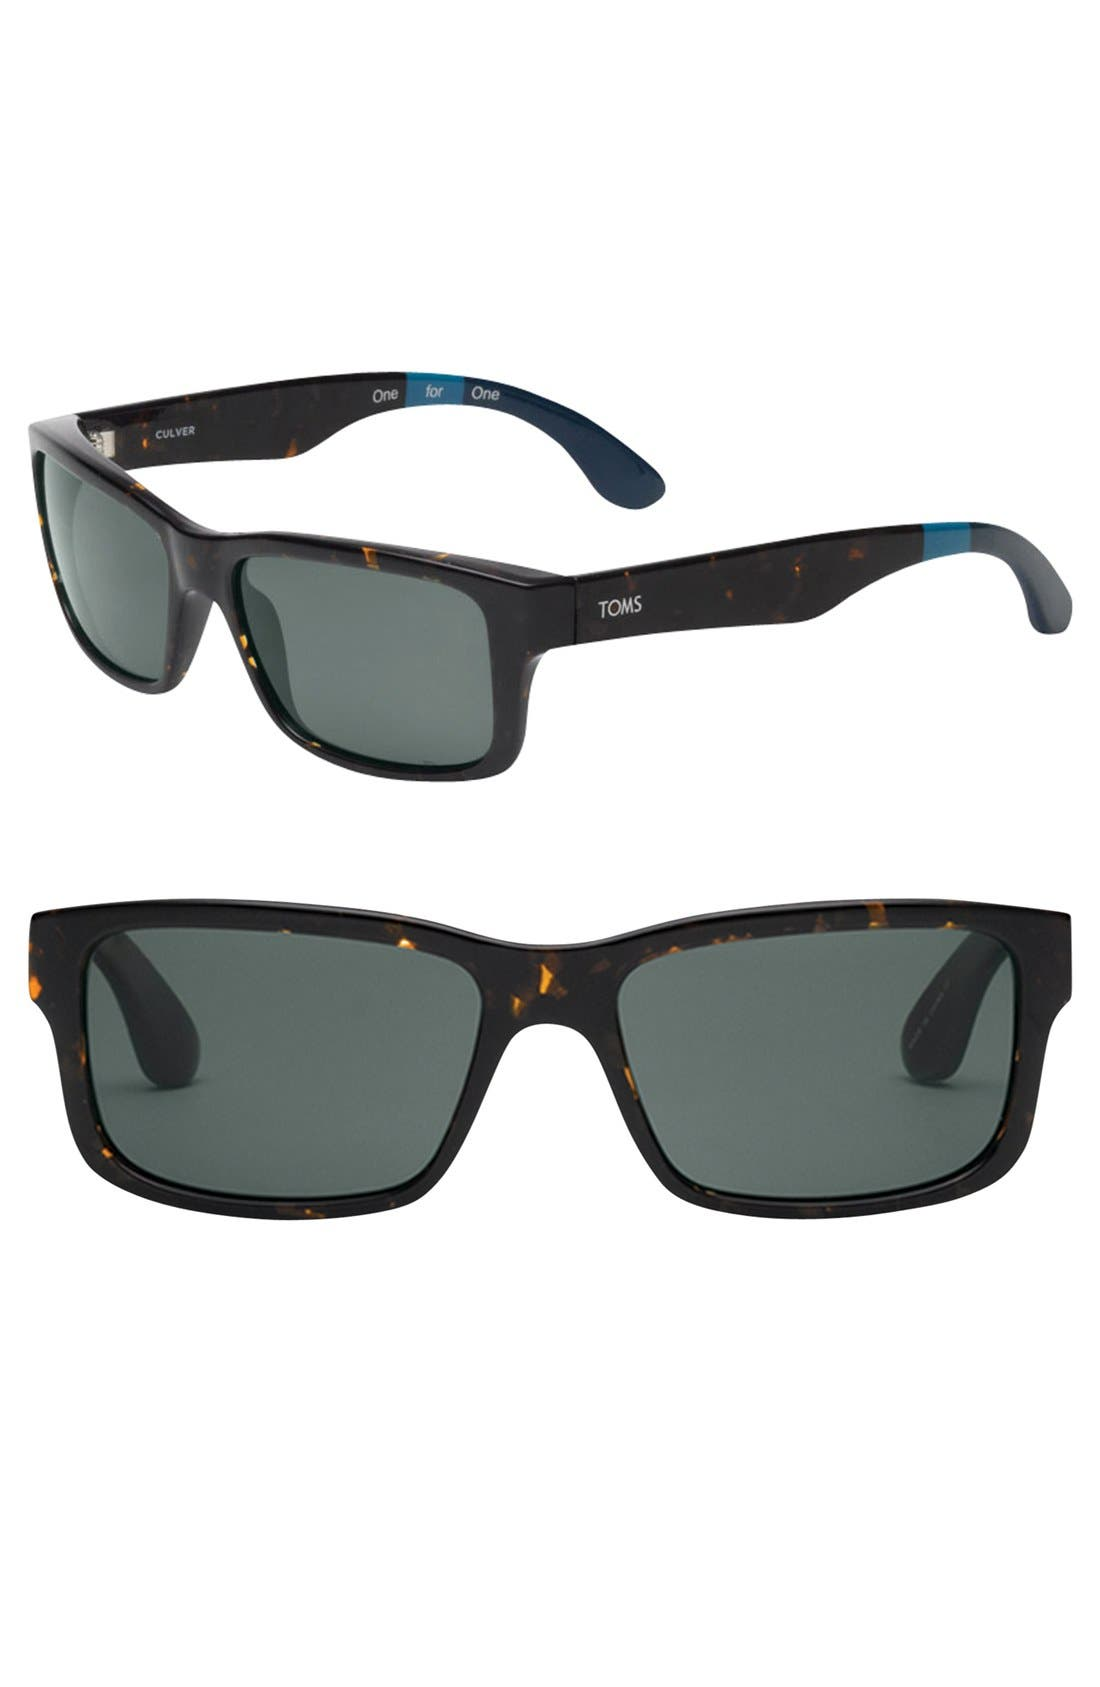 Alternate Image 1 Selected - TOMS 'Culver' 56mm Polarized Sunglasses